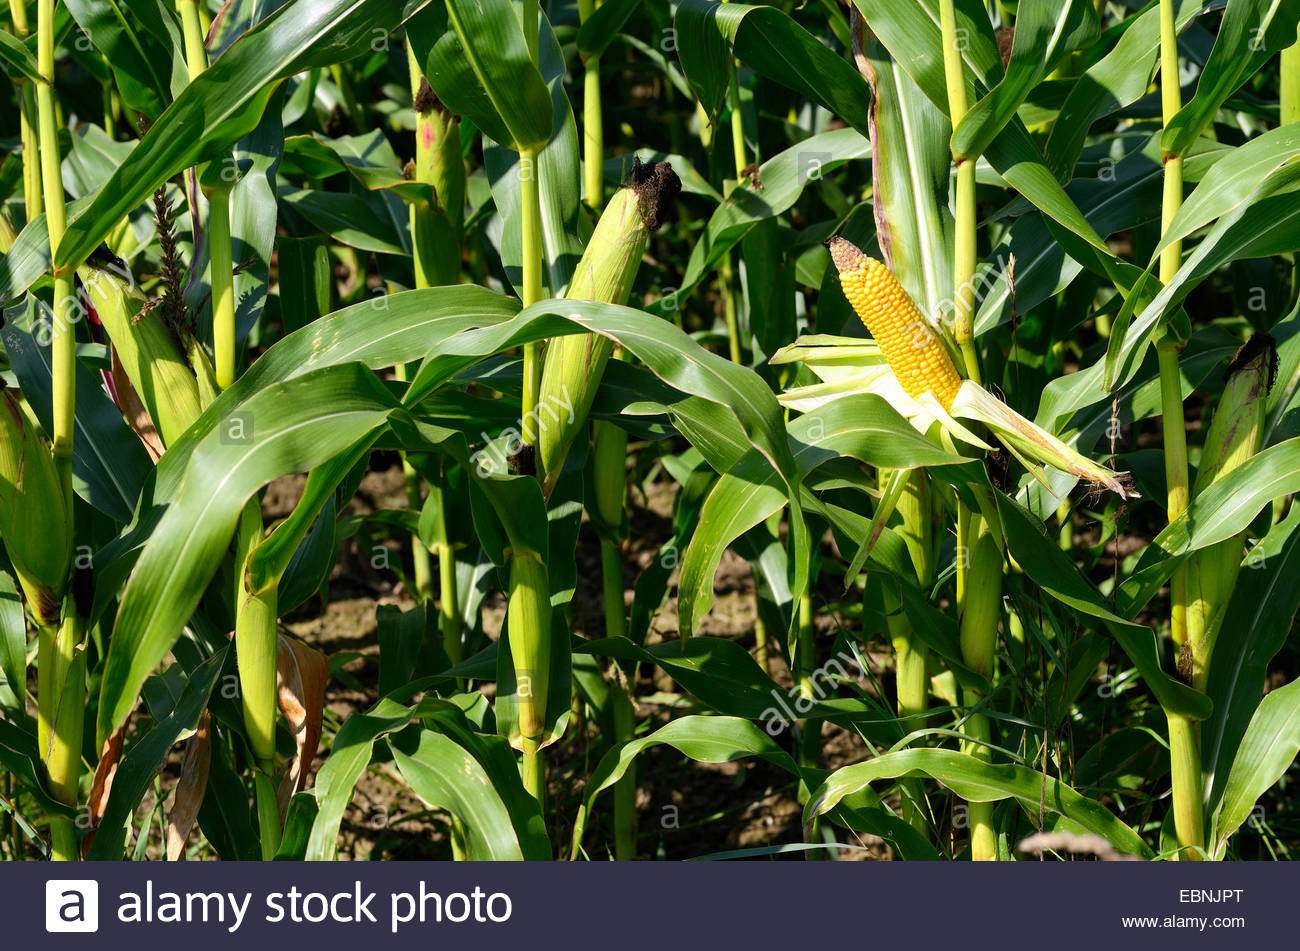 Indian corn, maize (Zea mays), maize field with corn cobs - Stock Image